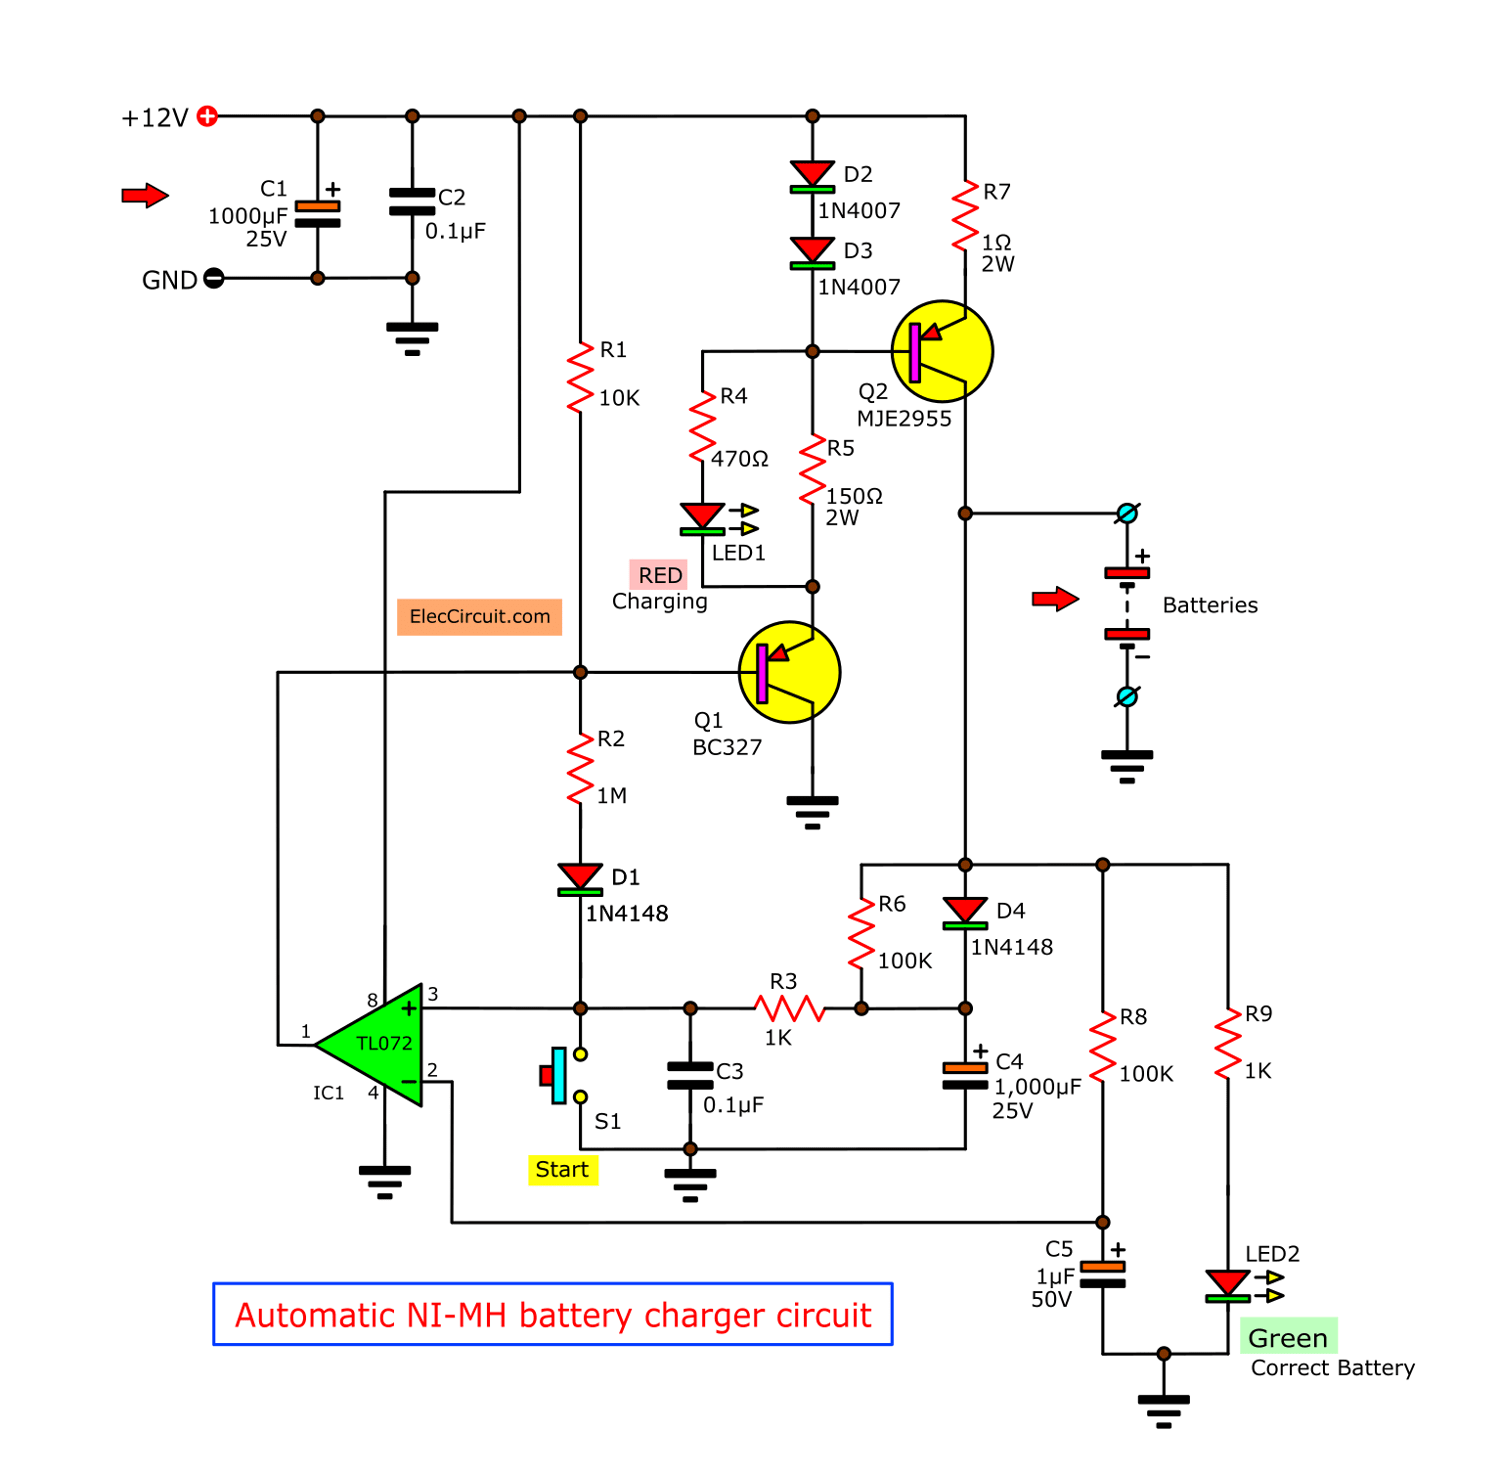 hight resolution of pp3 nimh battery charger circuit diagram ni mh battery charger circuit using tl072 pp3